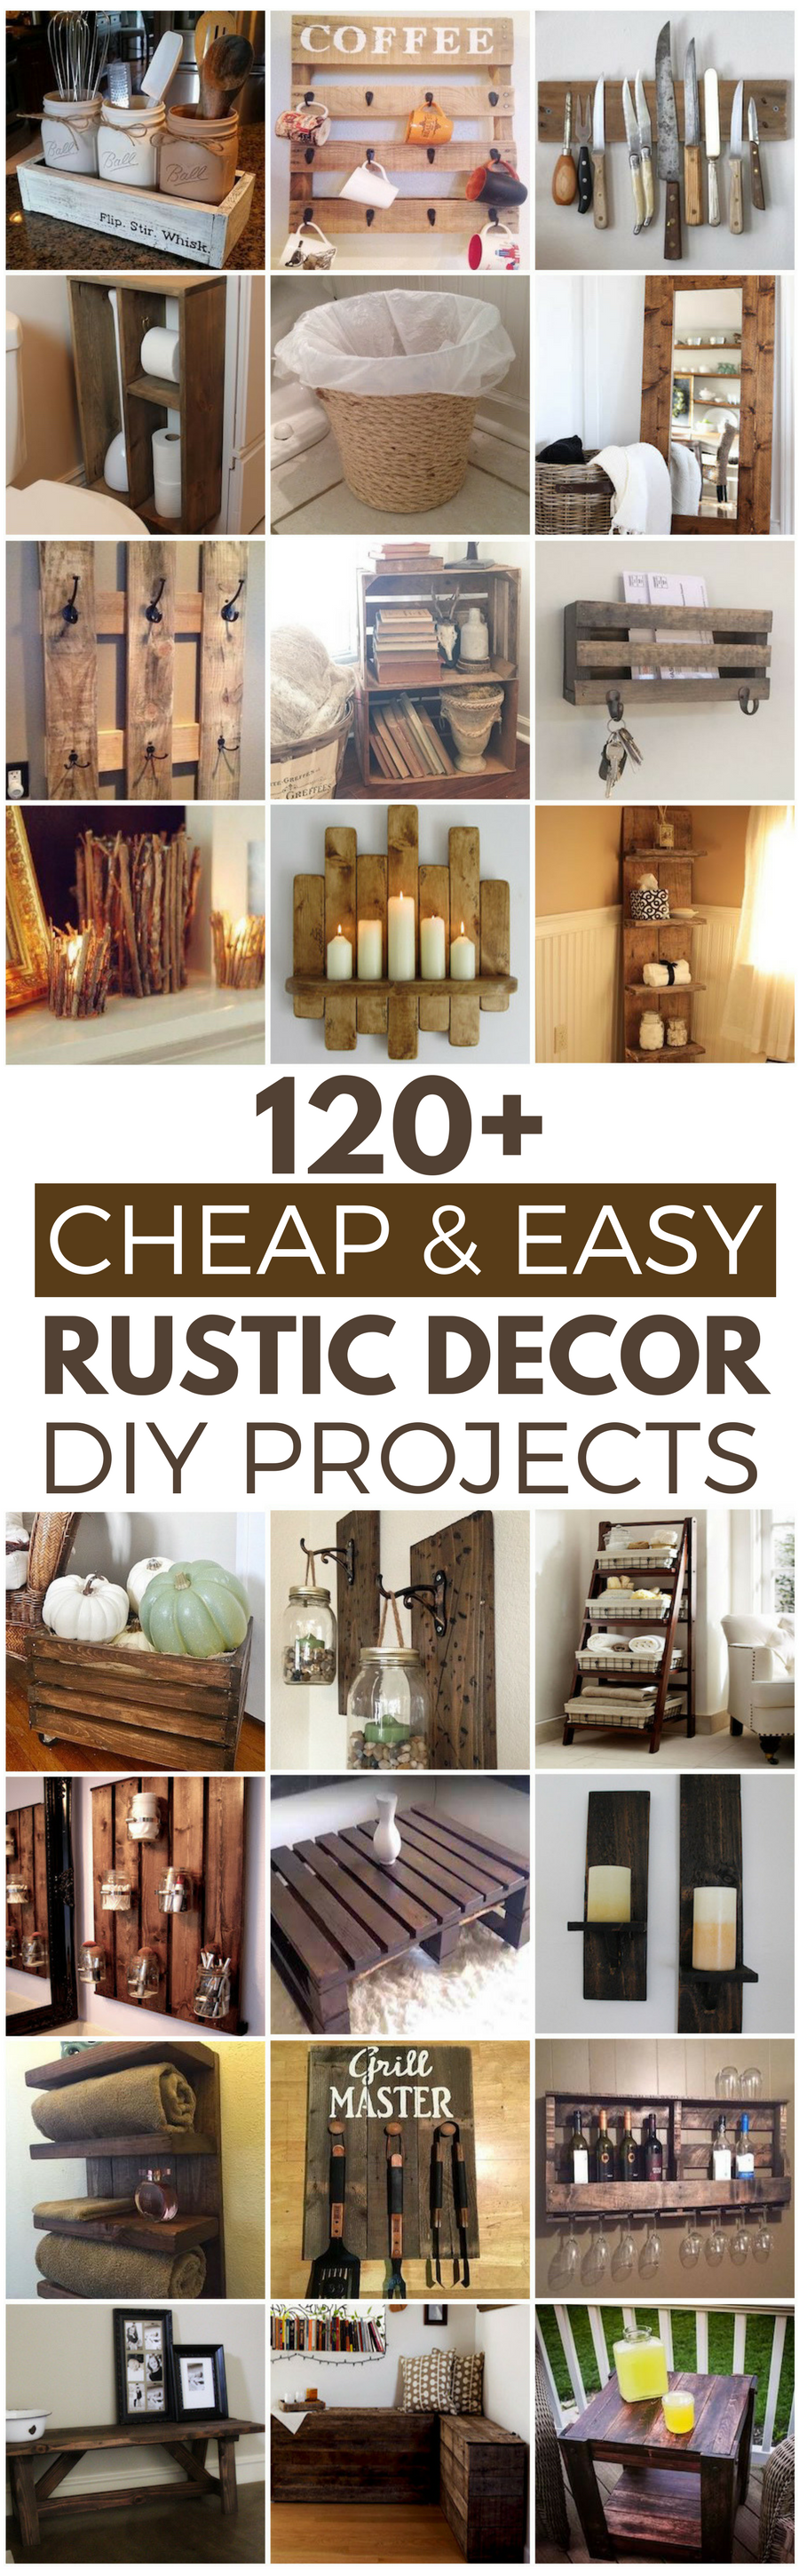 120 cheap and easy diy rustic home decor ideas prudent penny pincher - Best rustic interior design ideas beauty of simplicity ...